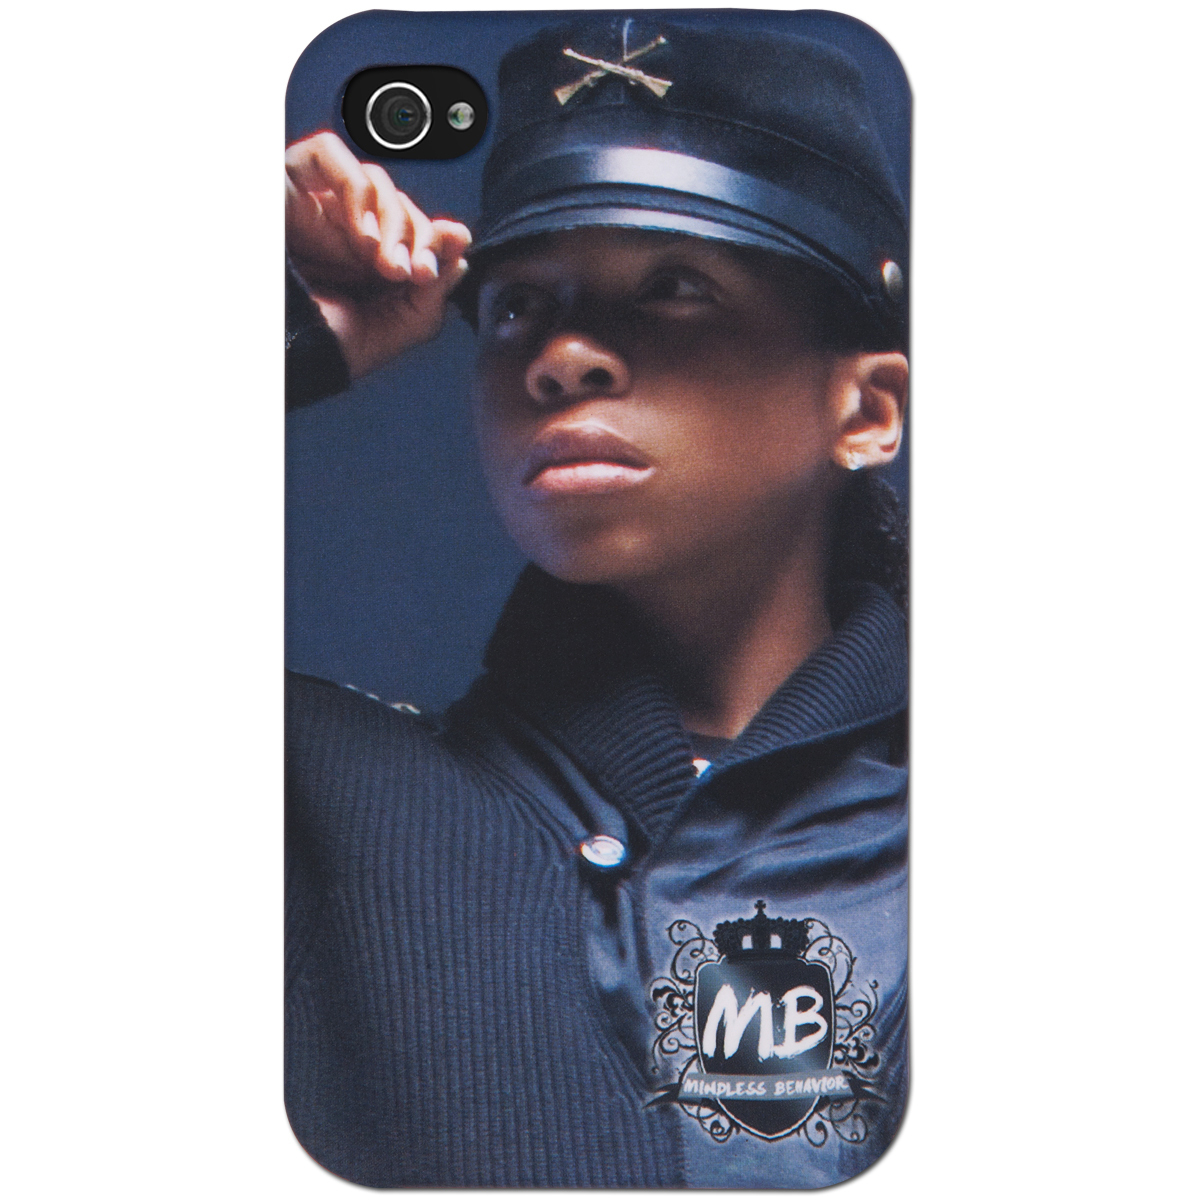 Mindless Behavior iPhone Case - Roc Royal